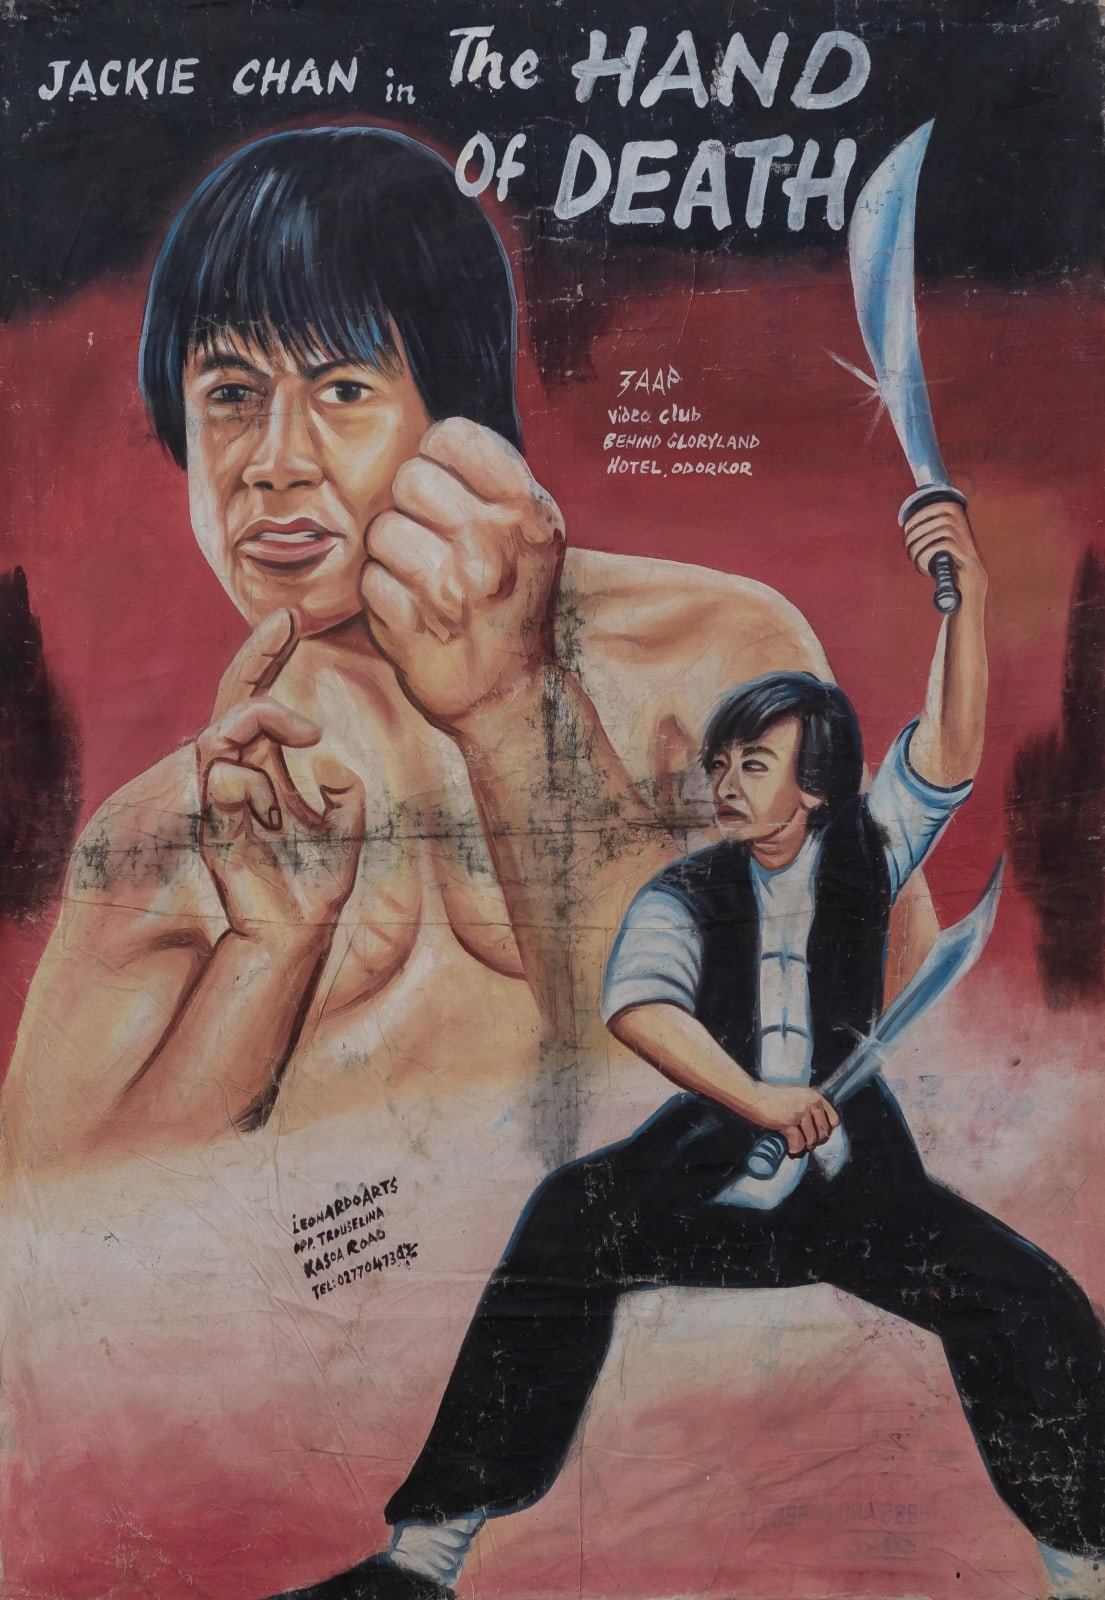 Jackie Chan in the Hand of Death 154 x 115 cm